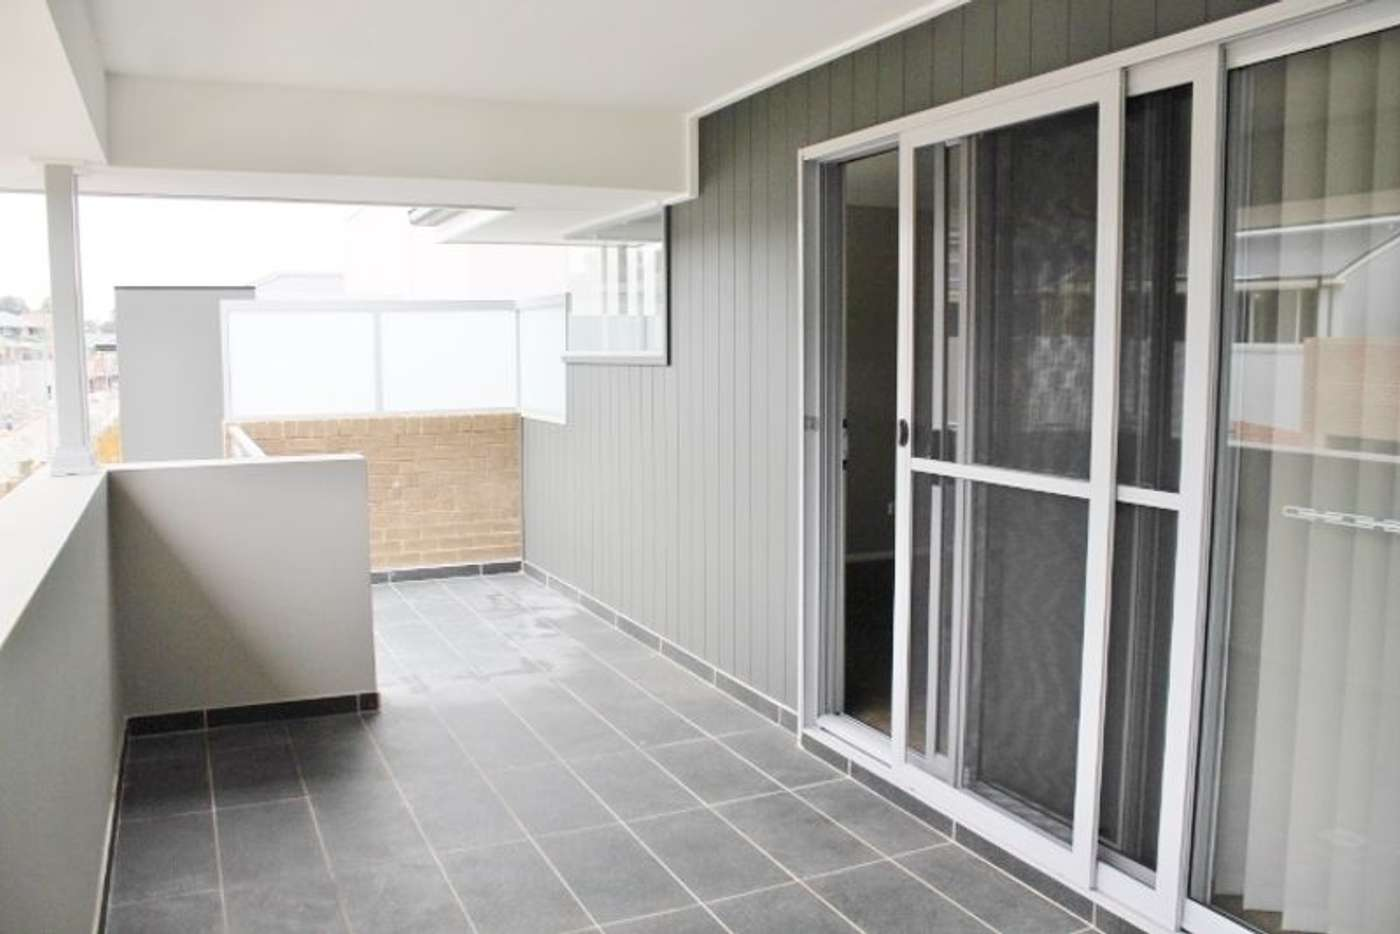 Seventh view of Homely house listing, 36 Caballo Street, Rouse Hill NSW 2155